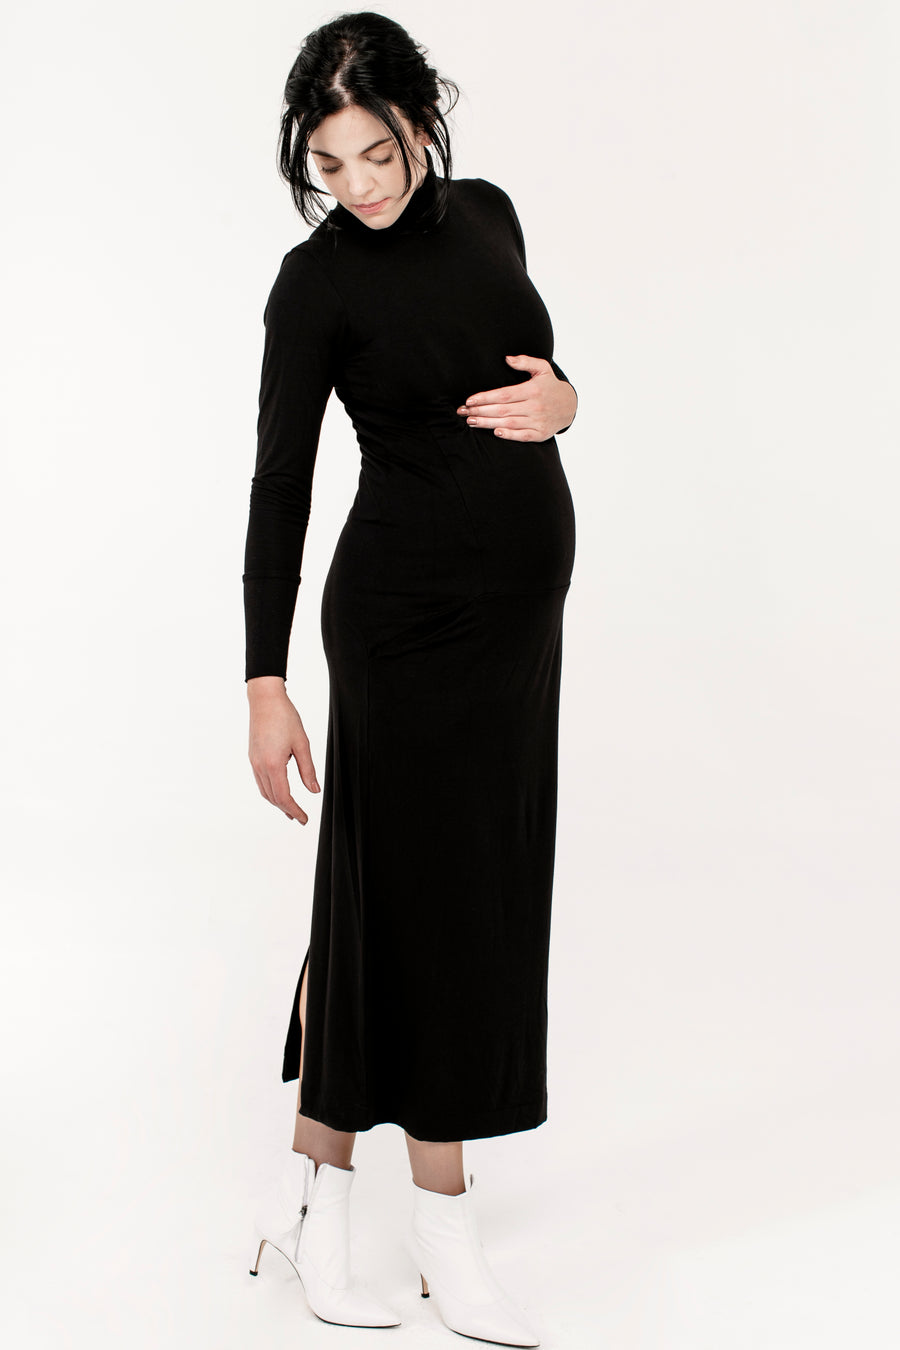 Long Poloneck Nursing Dress - JLMaternity